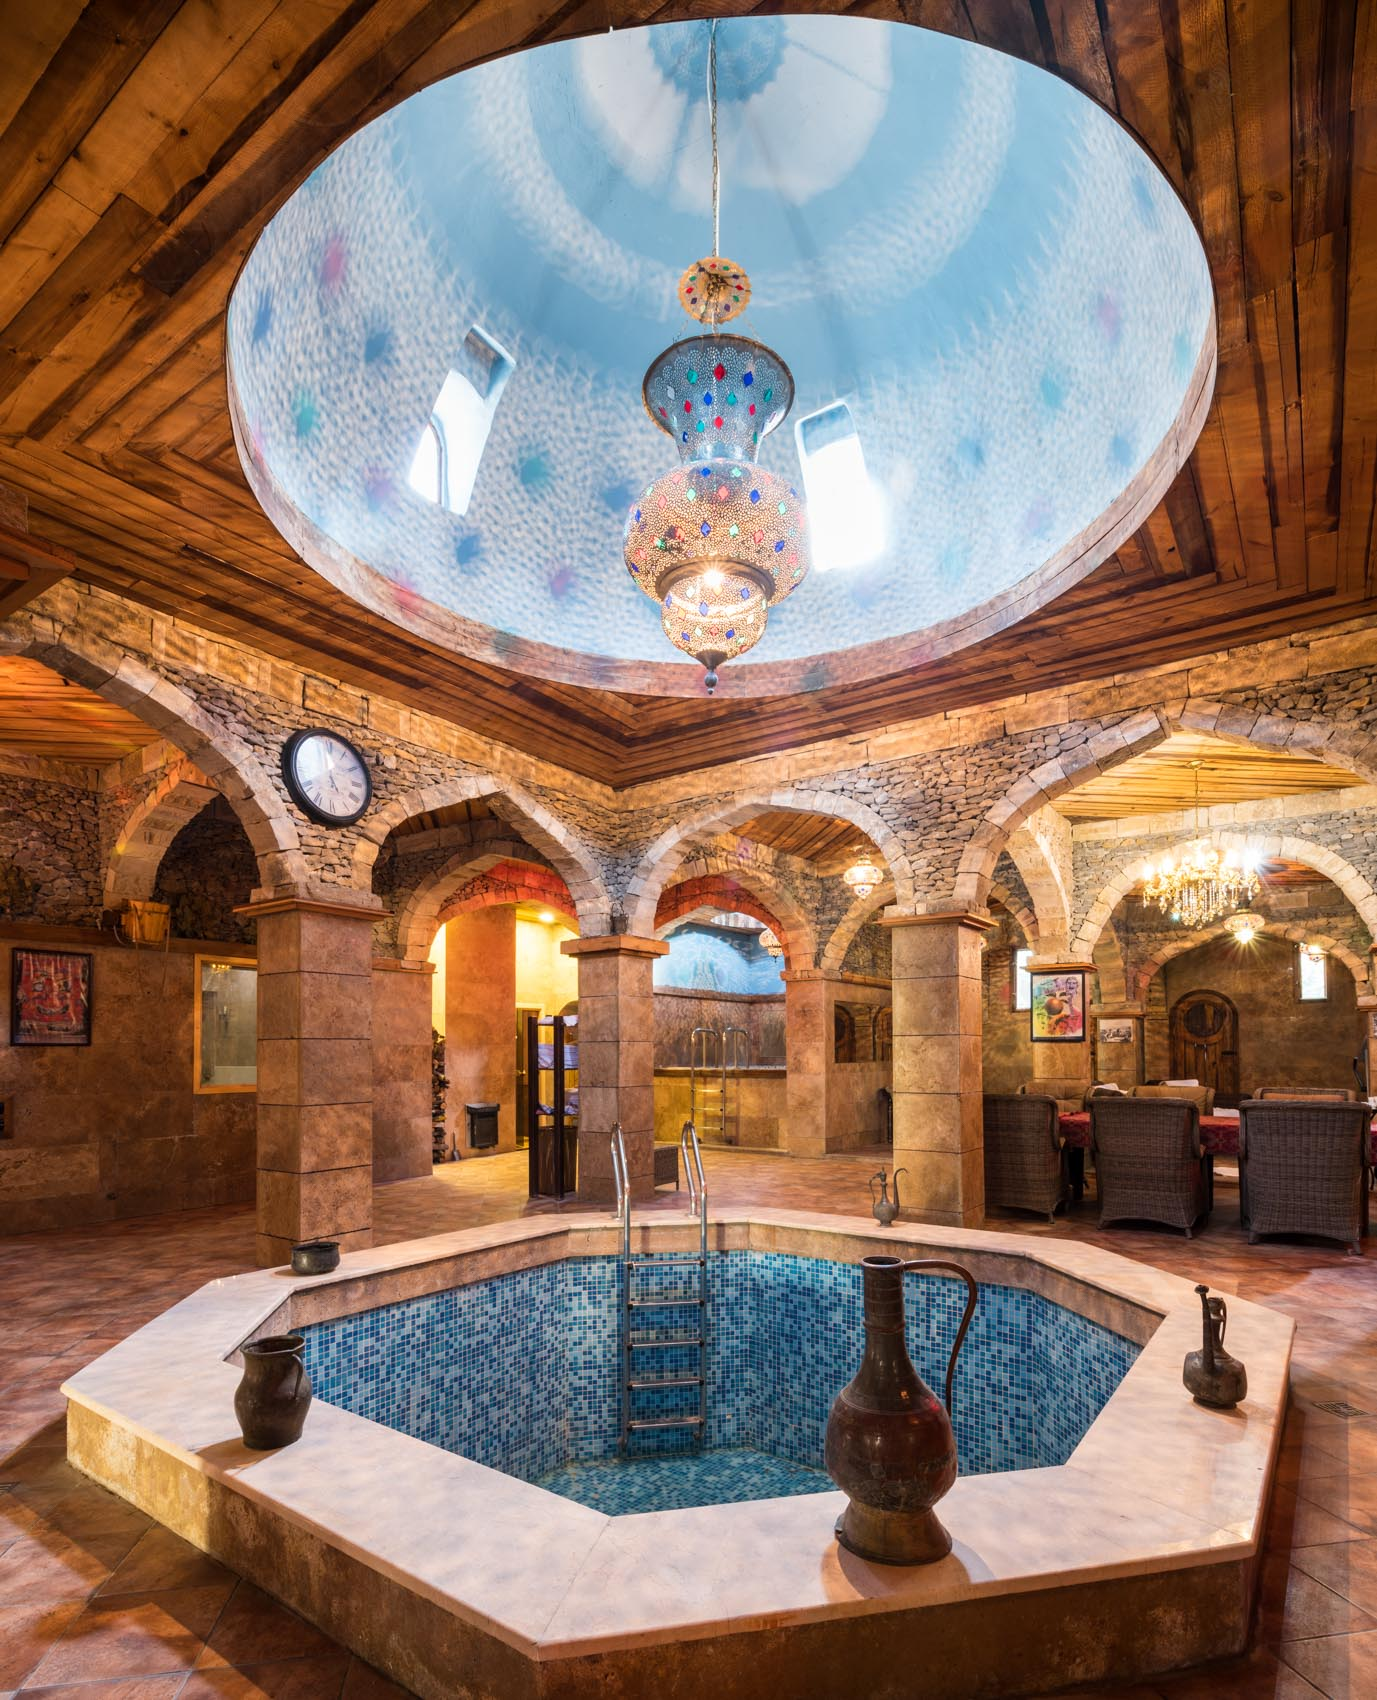 spa-interior-traditional-turkish-hammam-mosaic-tiles-azerbaijan-baku